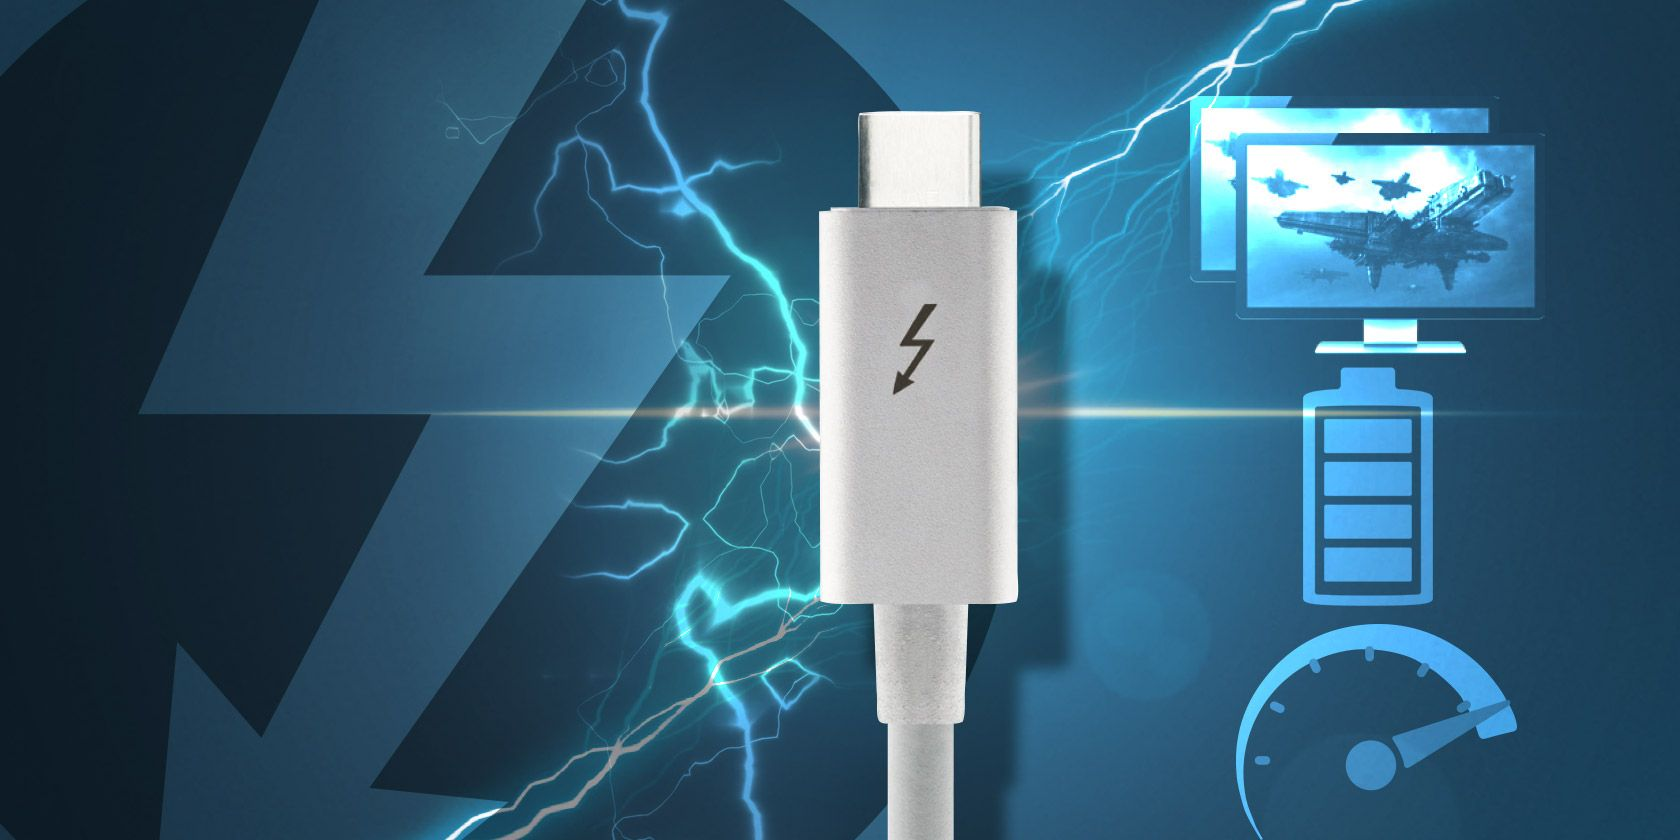 Thunderbolt 3: What It Is & Why You Need to Start Using It